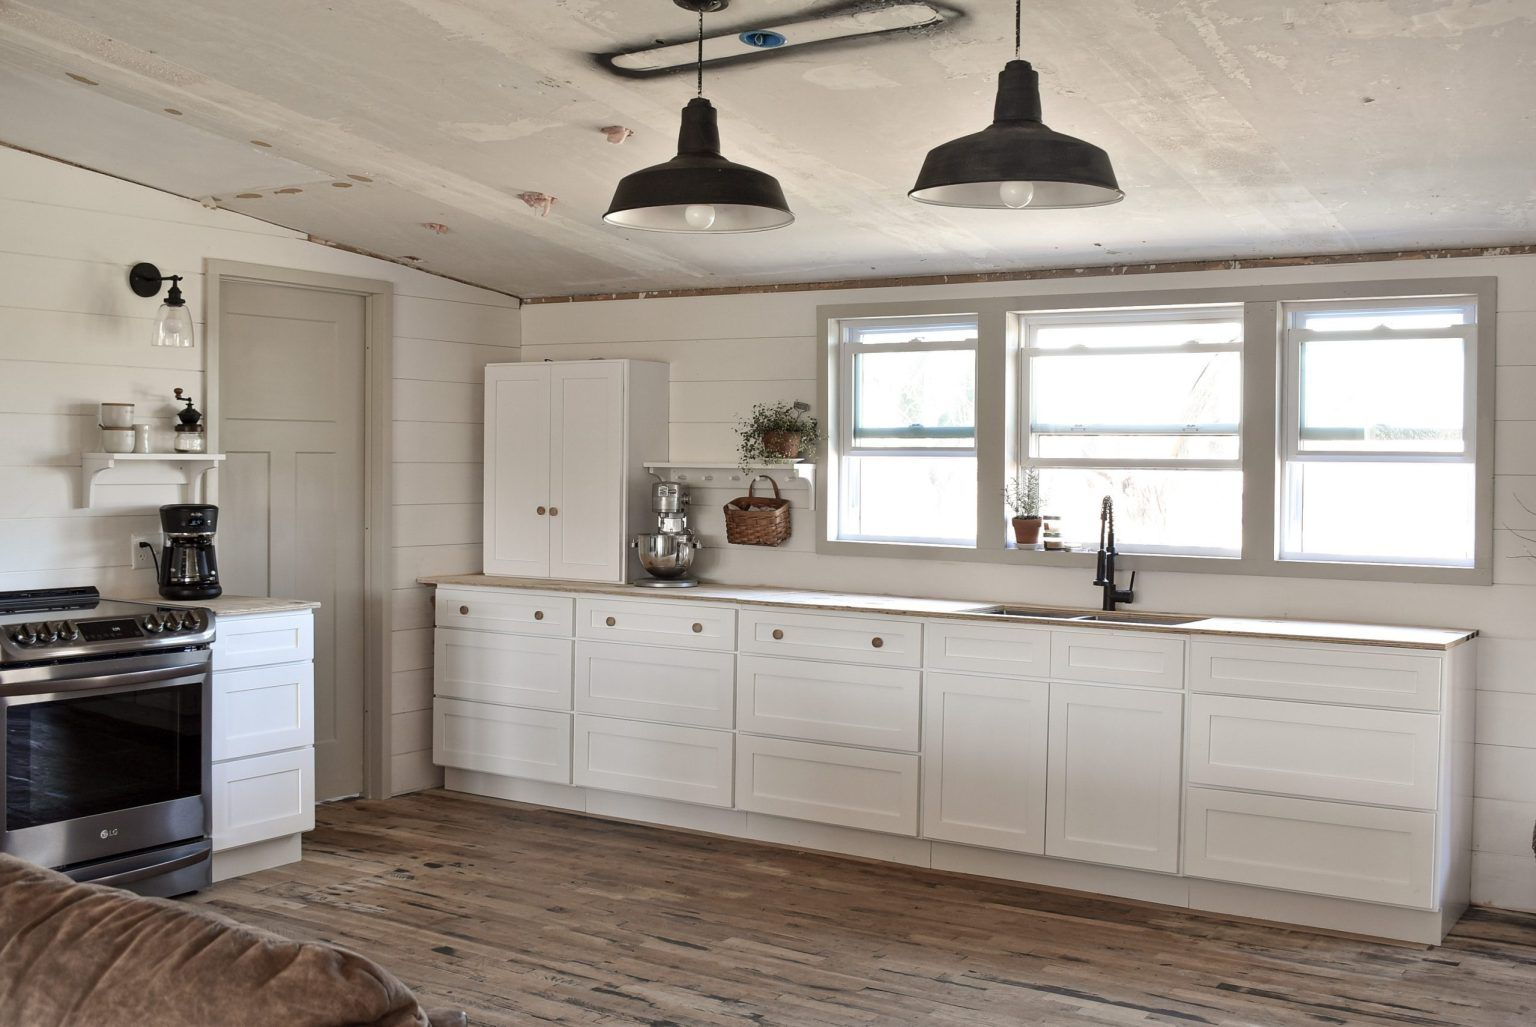 Double Wide Mobile Home Kitchen Cabinets   Mobile home ...